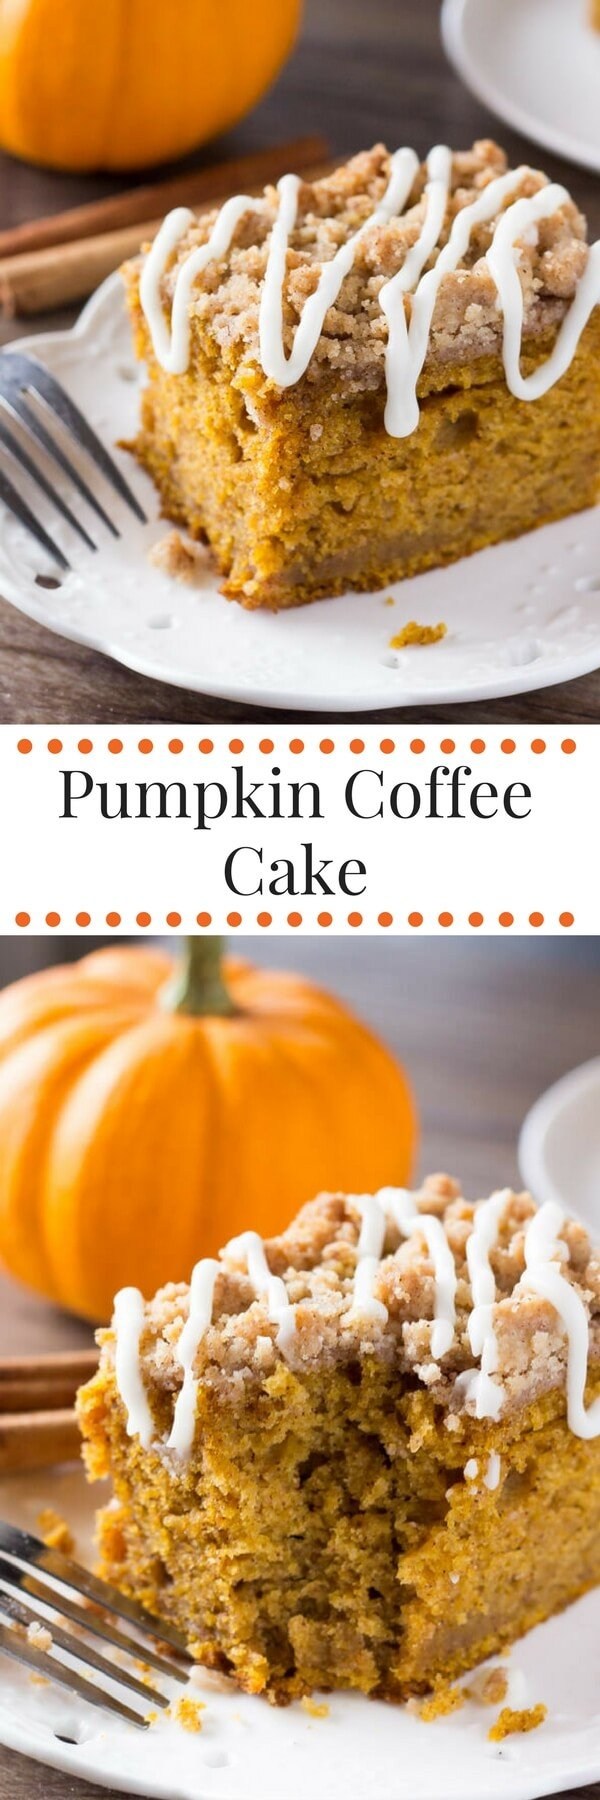 Pumpkin, spice & everything nice come together in this easy Pumpkin Coffee Cake with streusel topping. Made with sour cream so it's super moist - it's perfect for fall! #pumpkin #fall #coffeecake #pumpkincoffeecake #thanksgiving